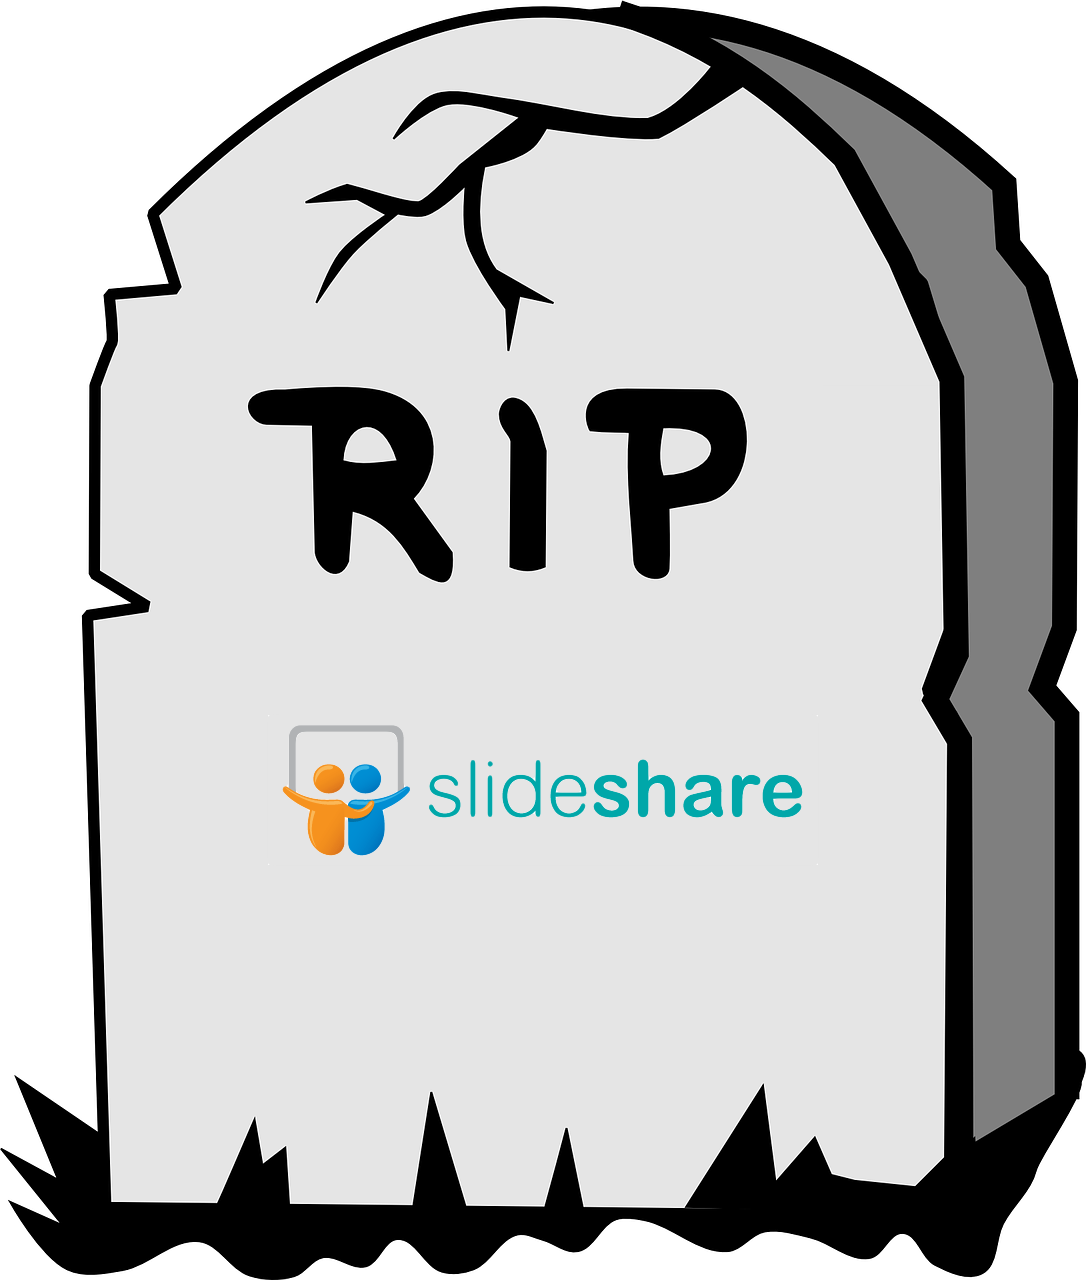 Does slideshare have a. Future clipart occurrence